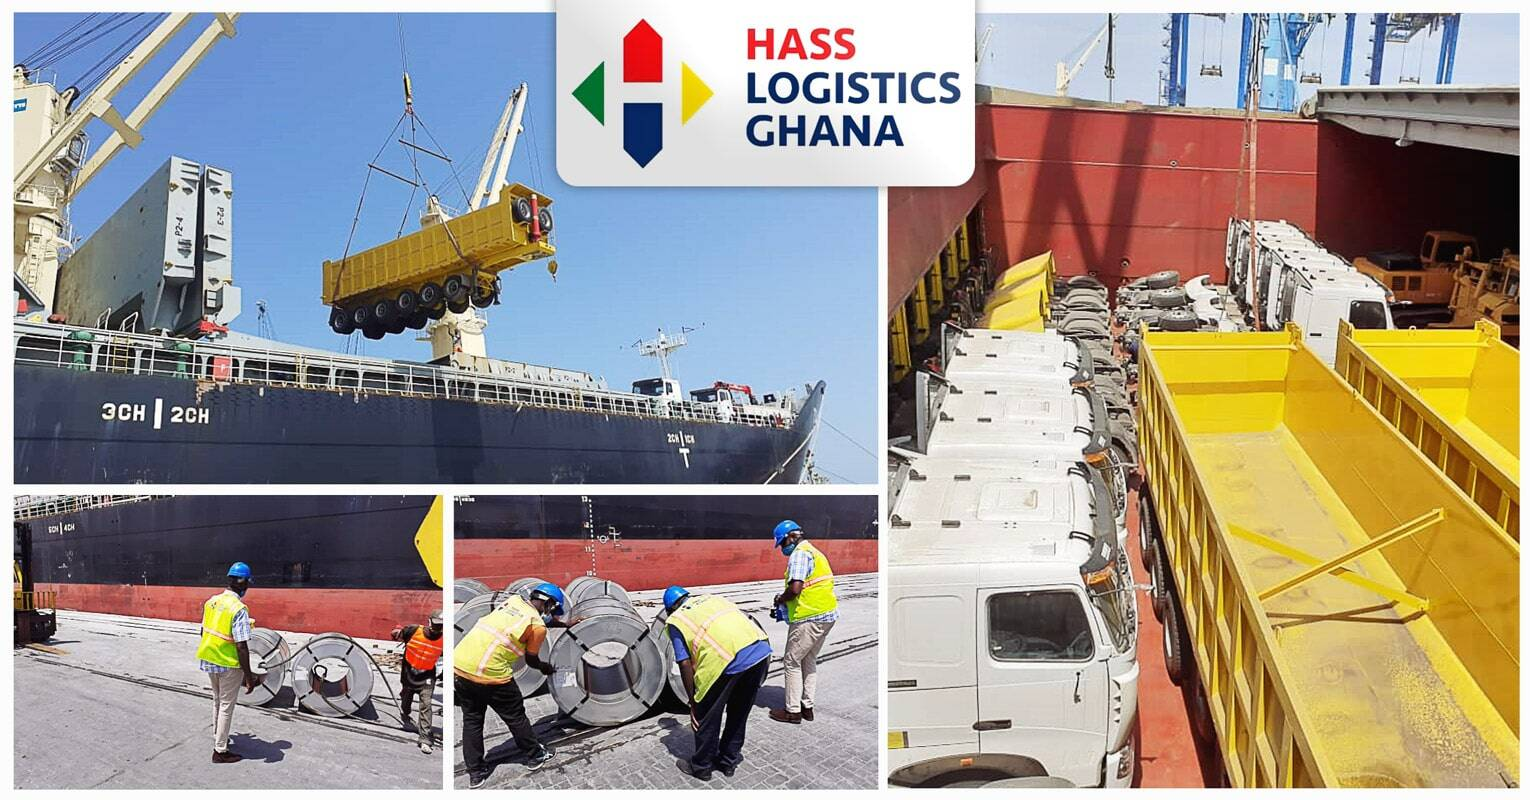 Hass Logistics Ghana Discharged Steel Products, Trucks and other Project Cargo in the Port of Tema